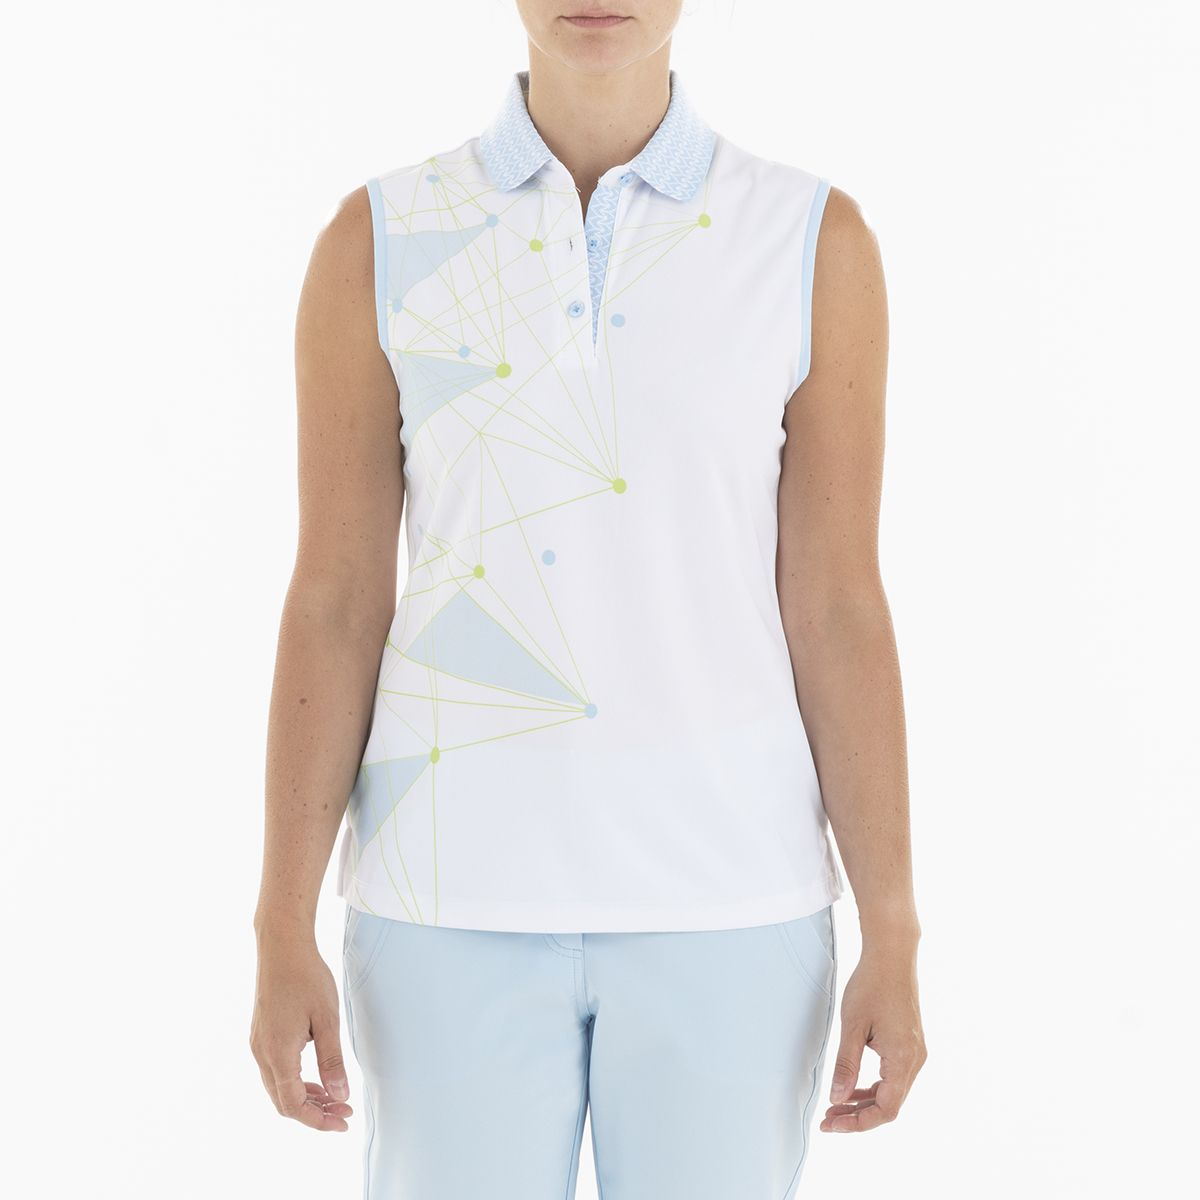 GENNA POLO GOLF 100 WHITE XS GELATO